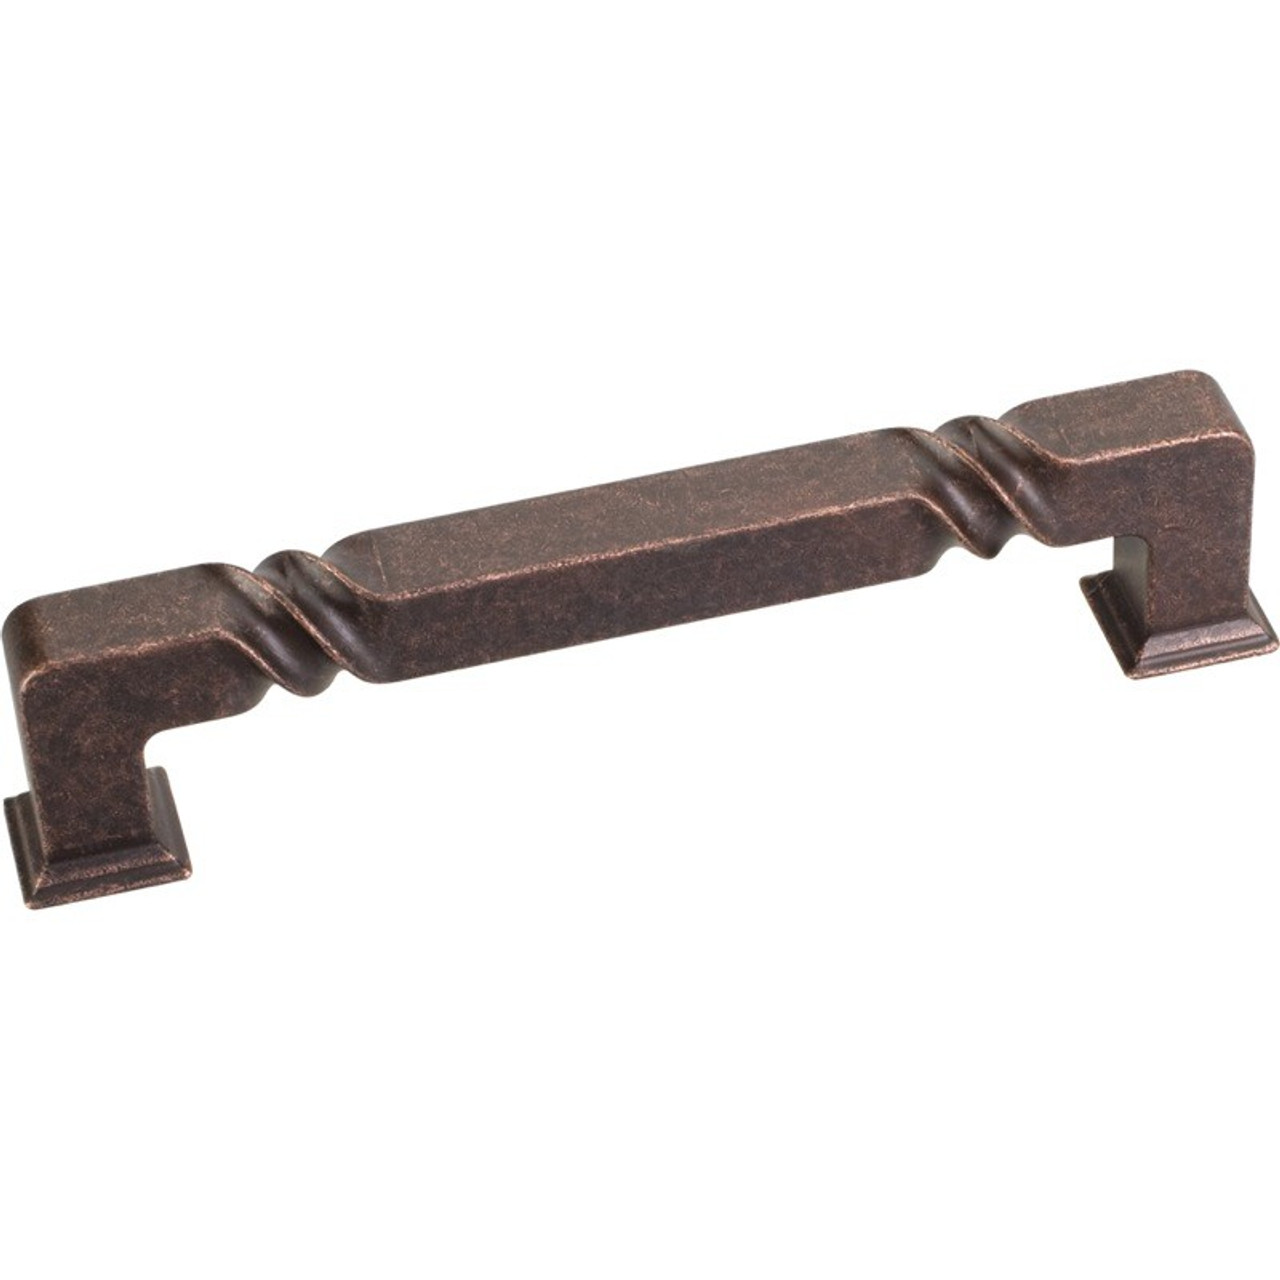 Distressed Oil Rubbed Bronze 5 13 16 Tahoe Decorative Rustic Cabinet Pull 602 128dmac Tahoe Collection Jeffrey Alexander By Hardware Resources Shop Cabinet And Home Hardware